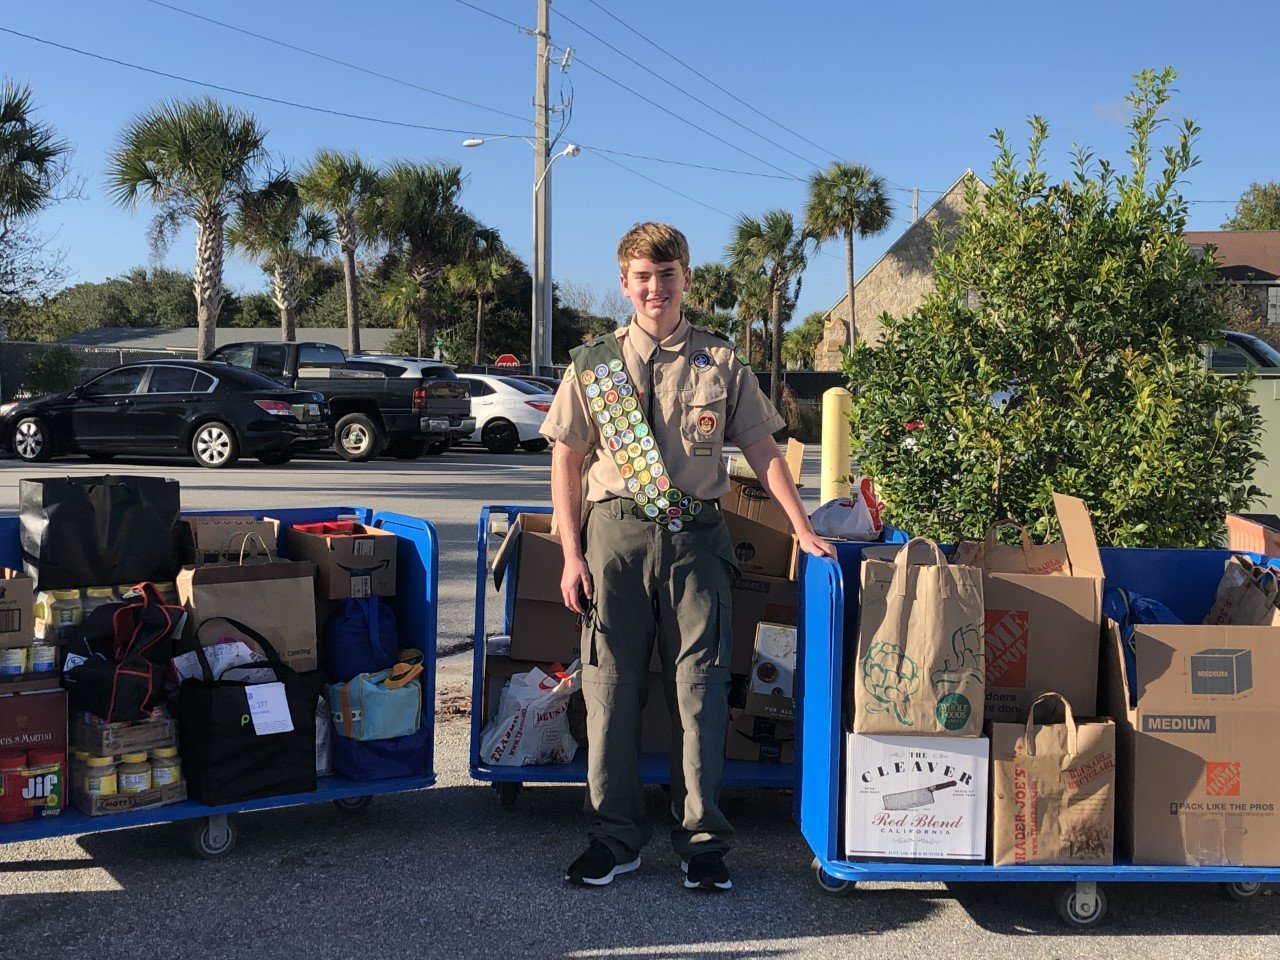 With the help of neighbors and friends, Eagle Scout Ben Black collected 920 pounds of food and toiletry items to donate to BEAM in addition to refurbishing 17 food bank carts.